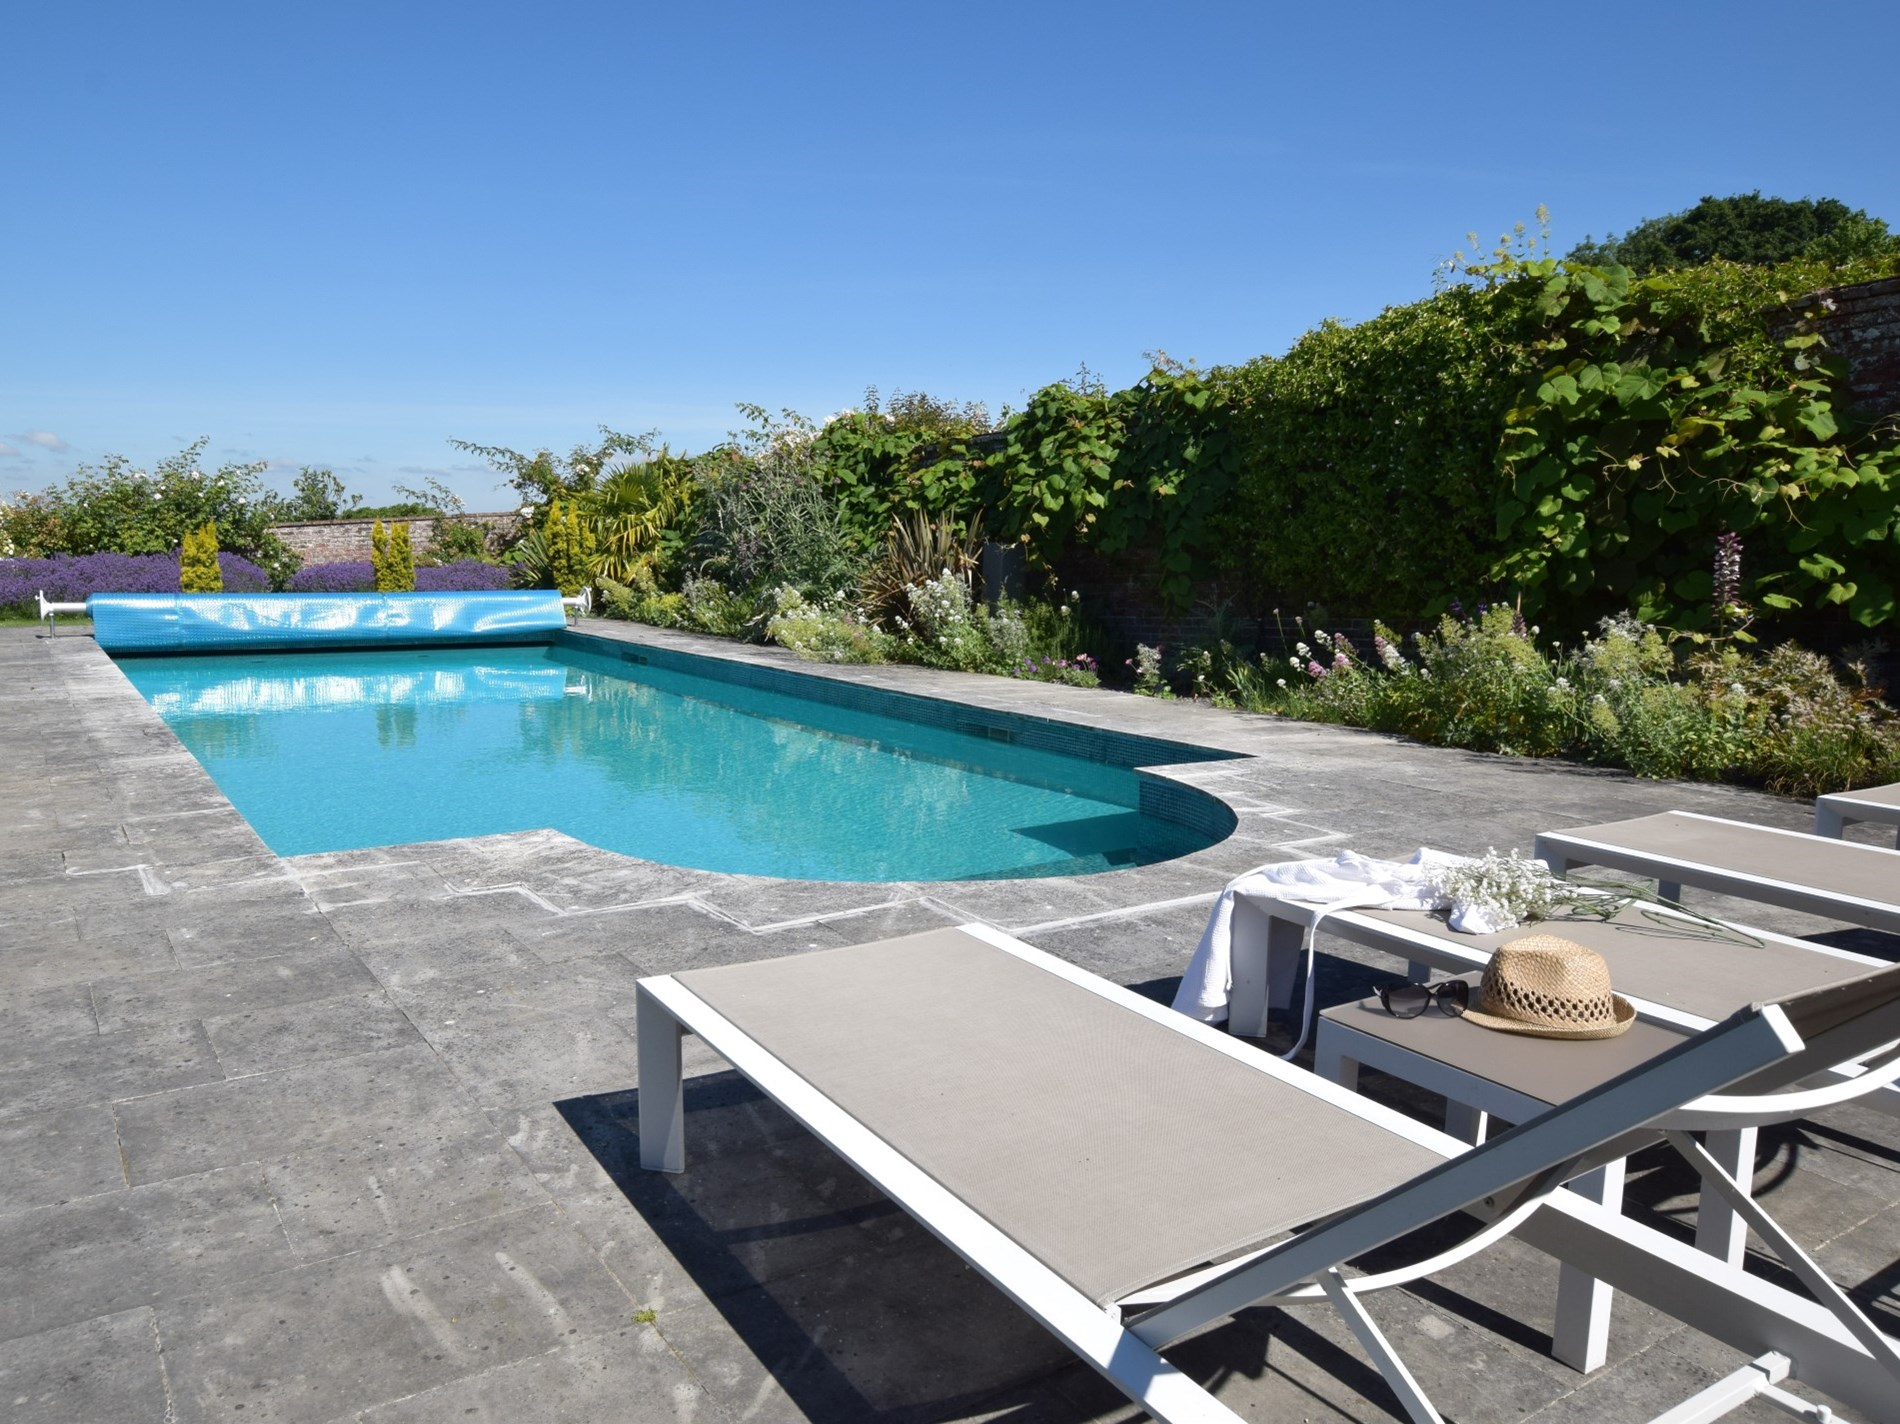 Access to owner's outdoor pool on request at this Kent coach house